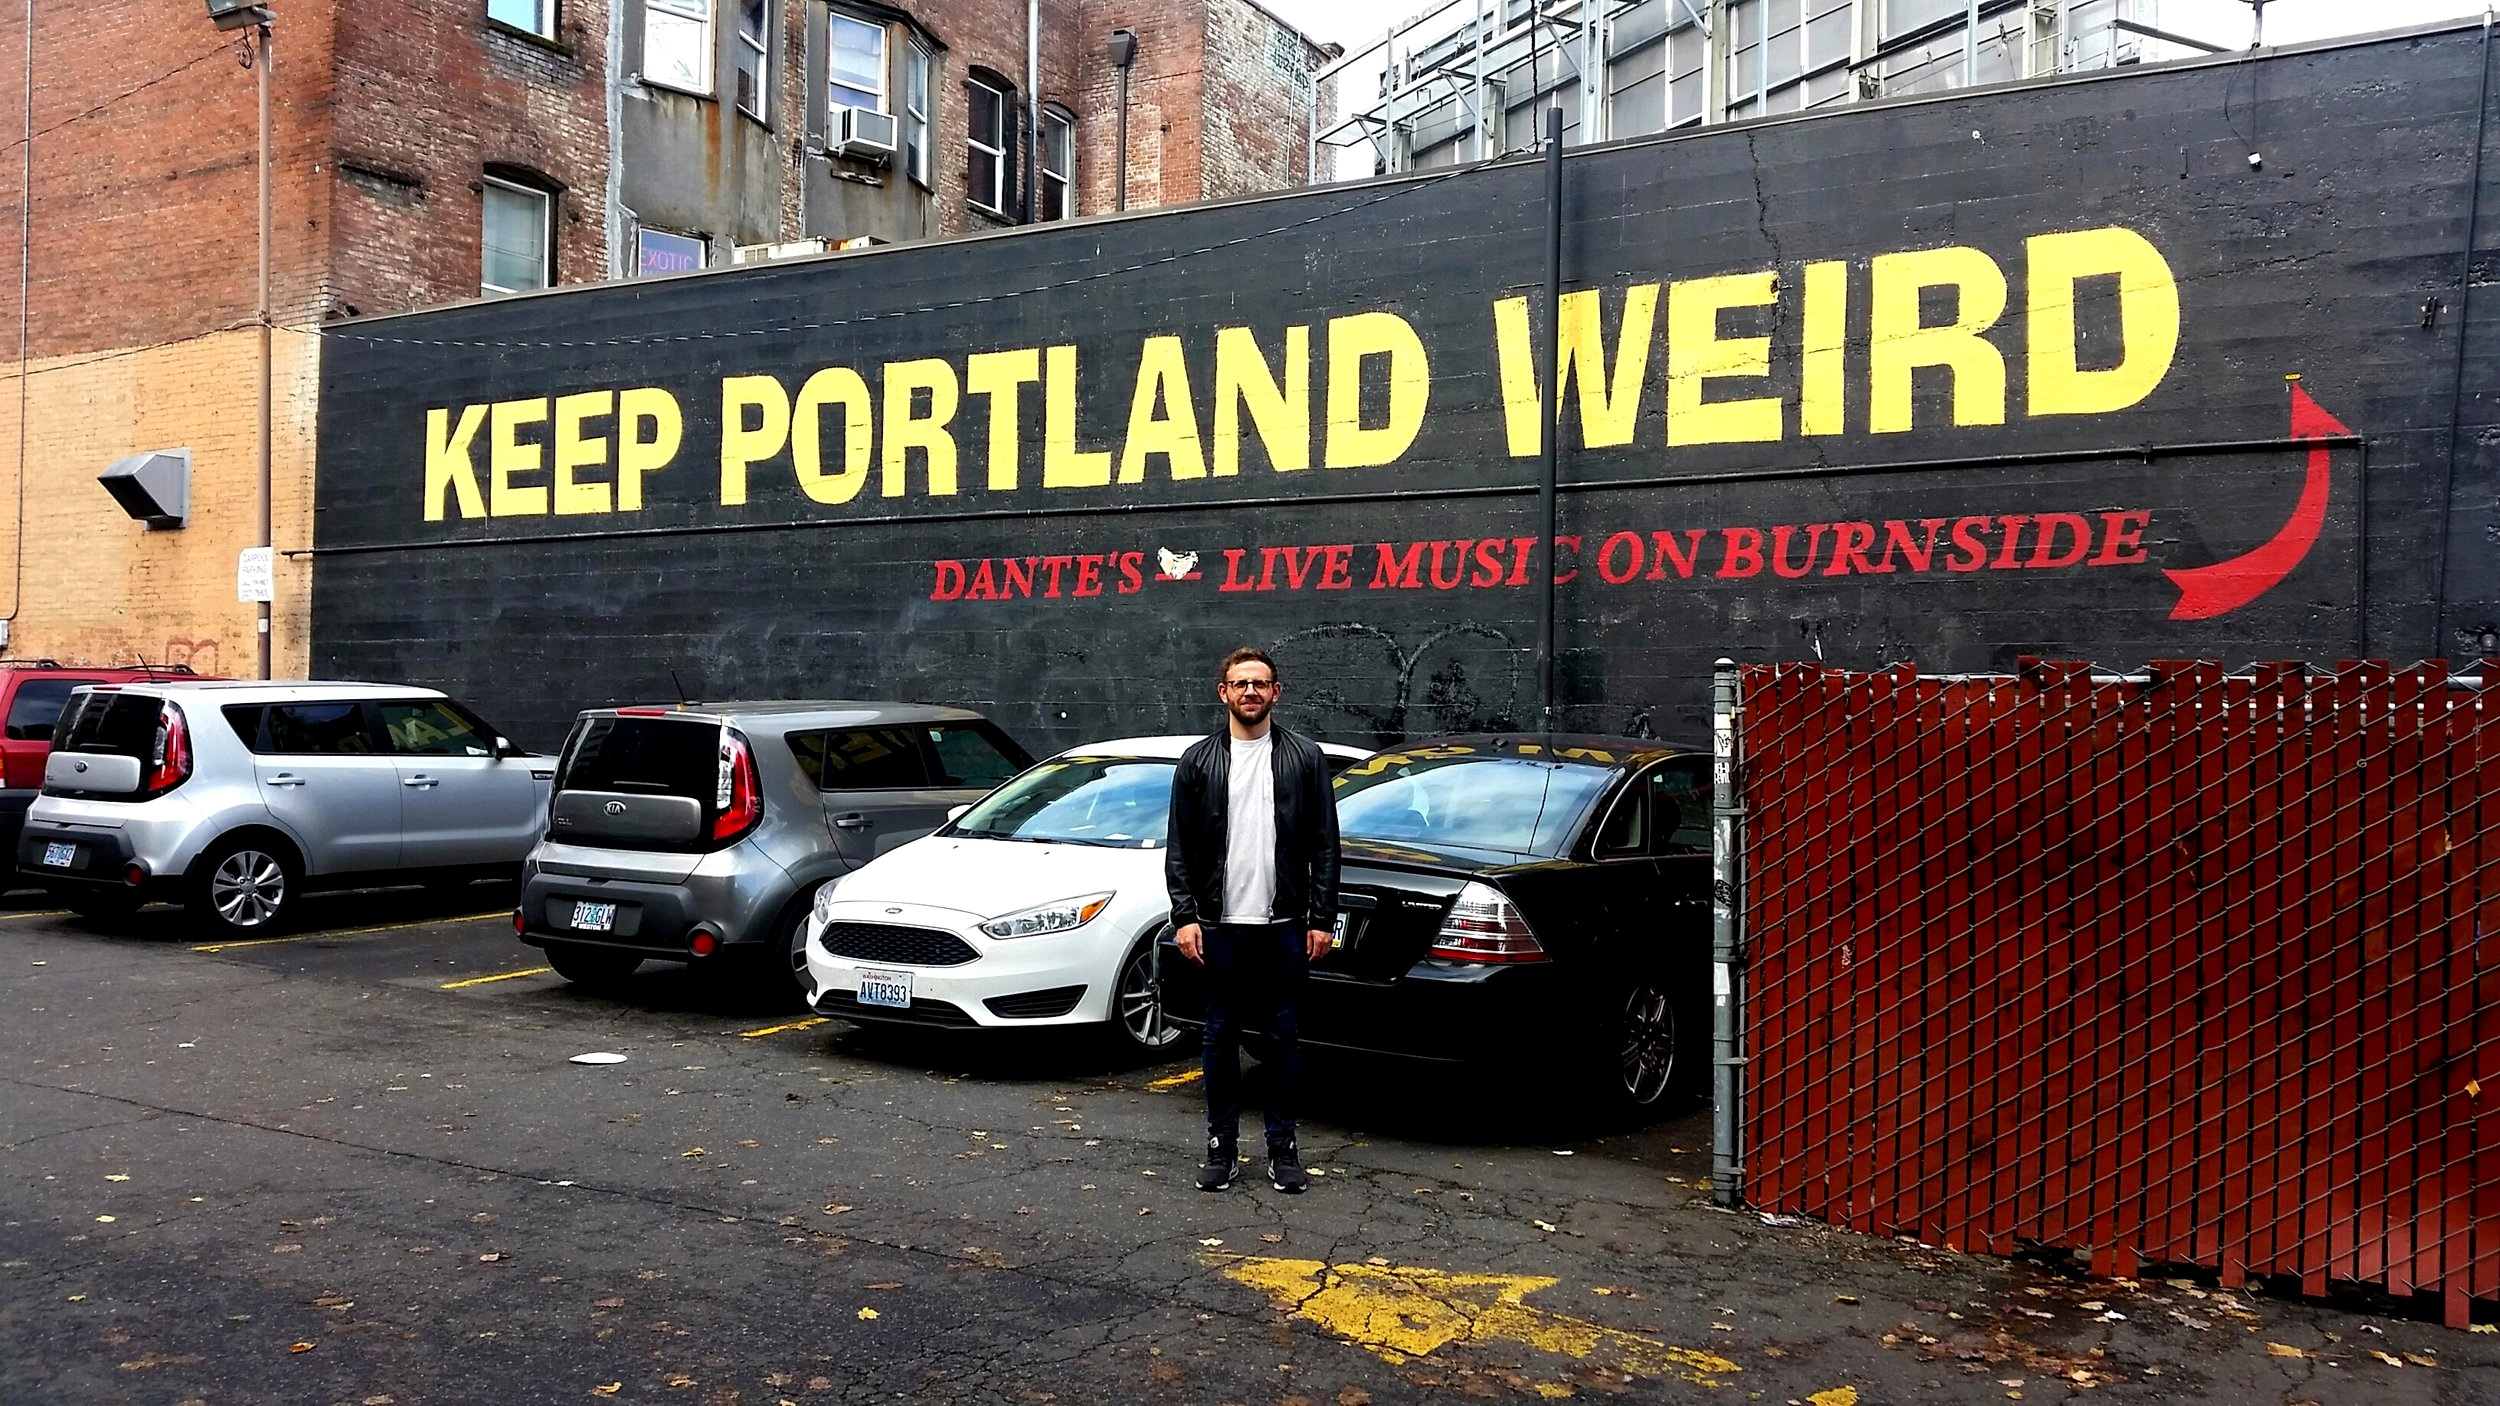 Inadvertently doing our bit to prevent Portland staying weird.